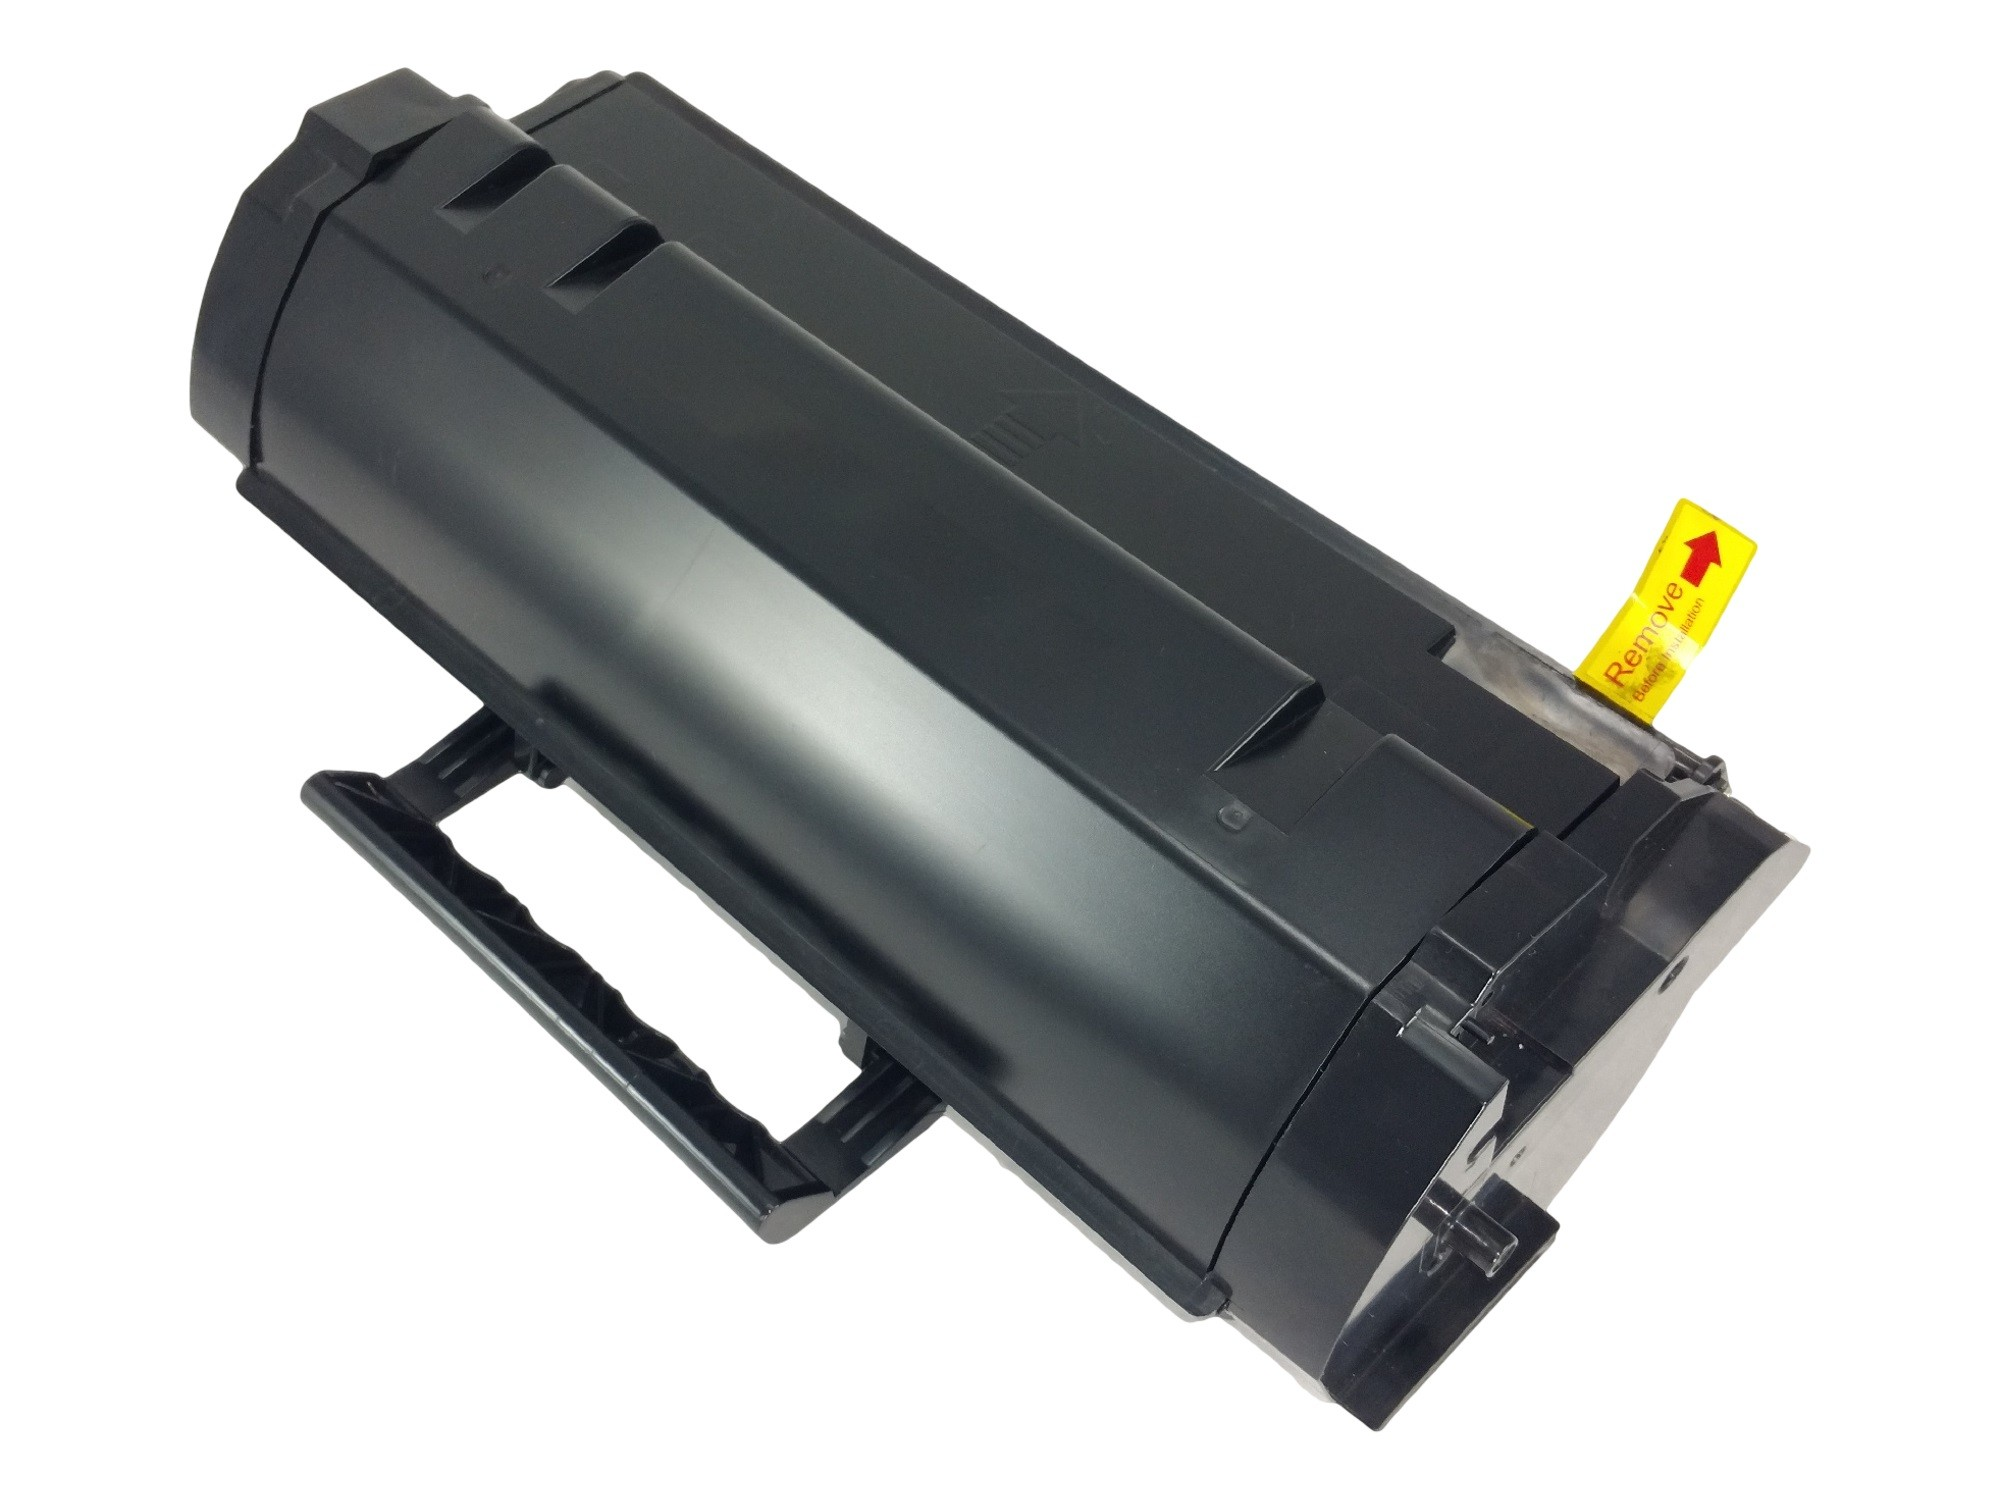 Dell B3465dnf (DJMKY) 332-0373 Compatible Toner Cartridge - 20000 yield